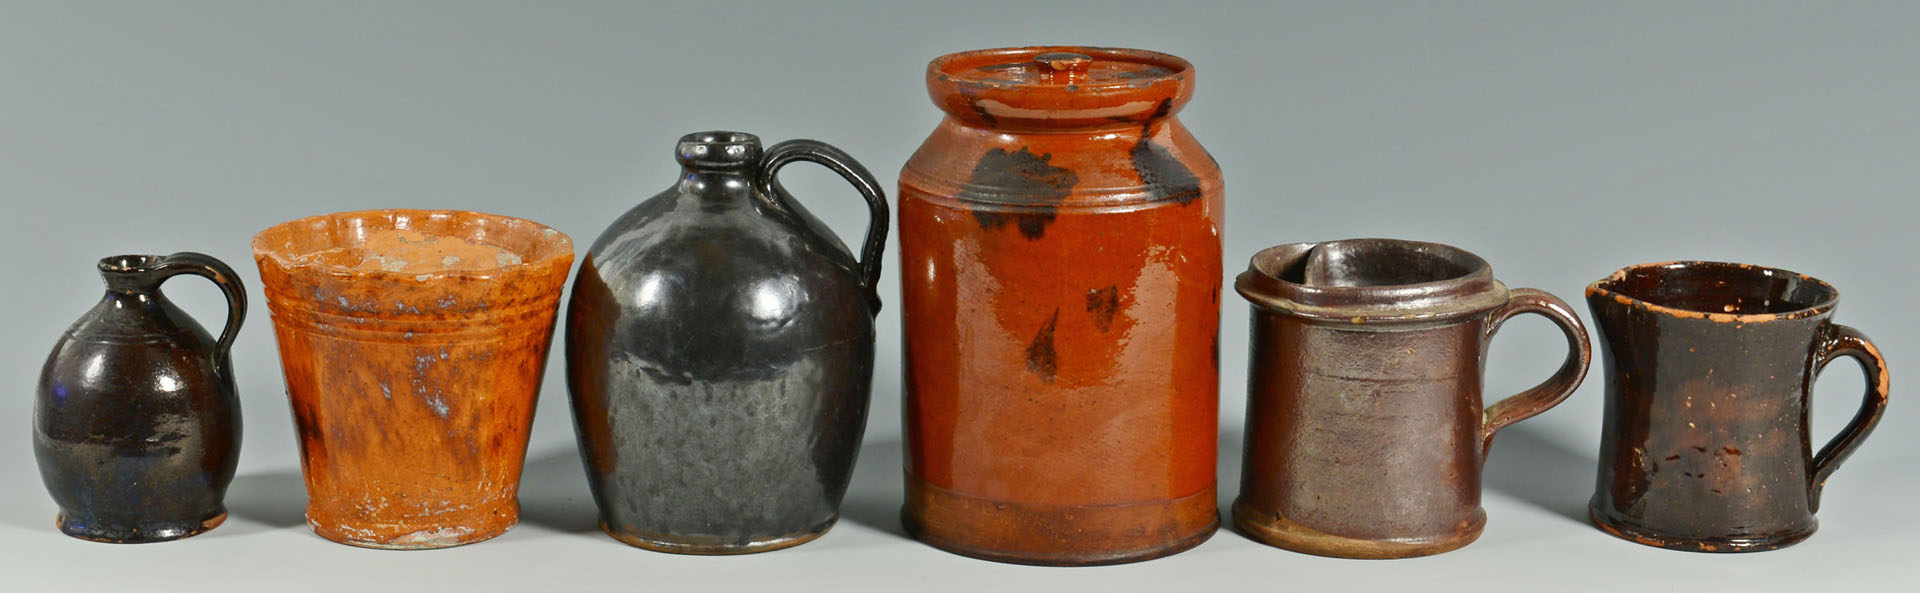 13 New England & NY/PA pottery items, most Redware